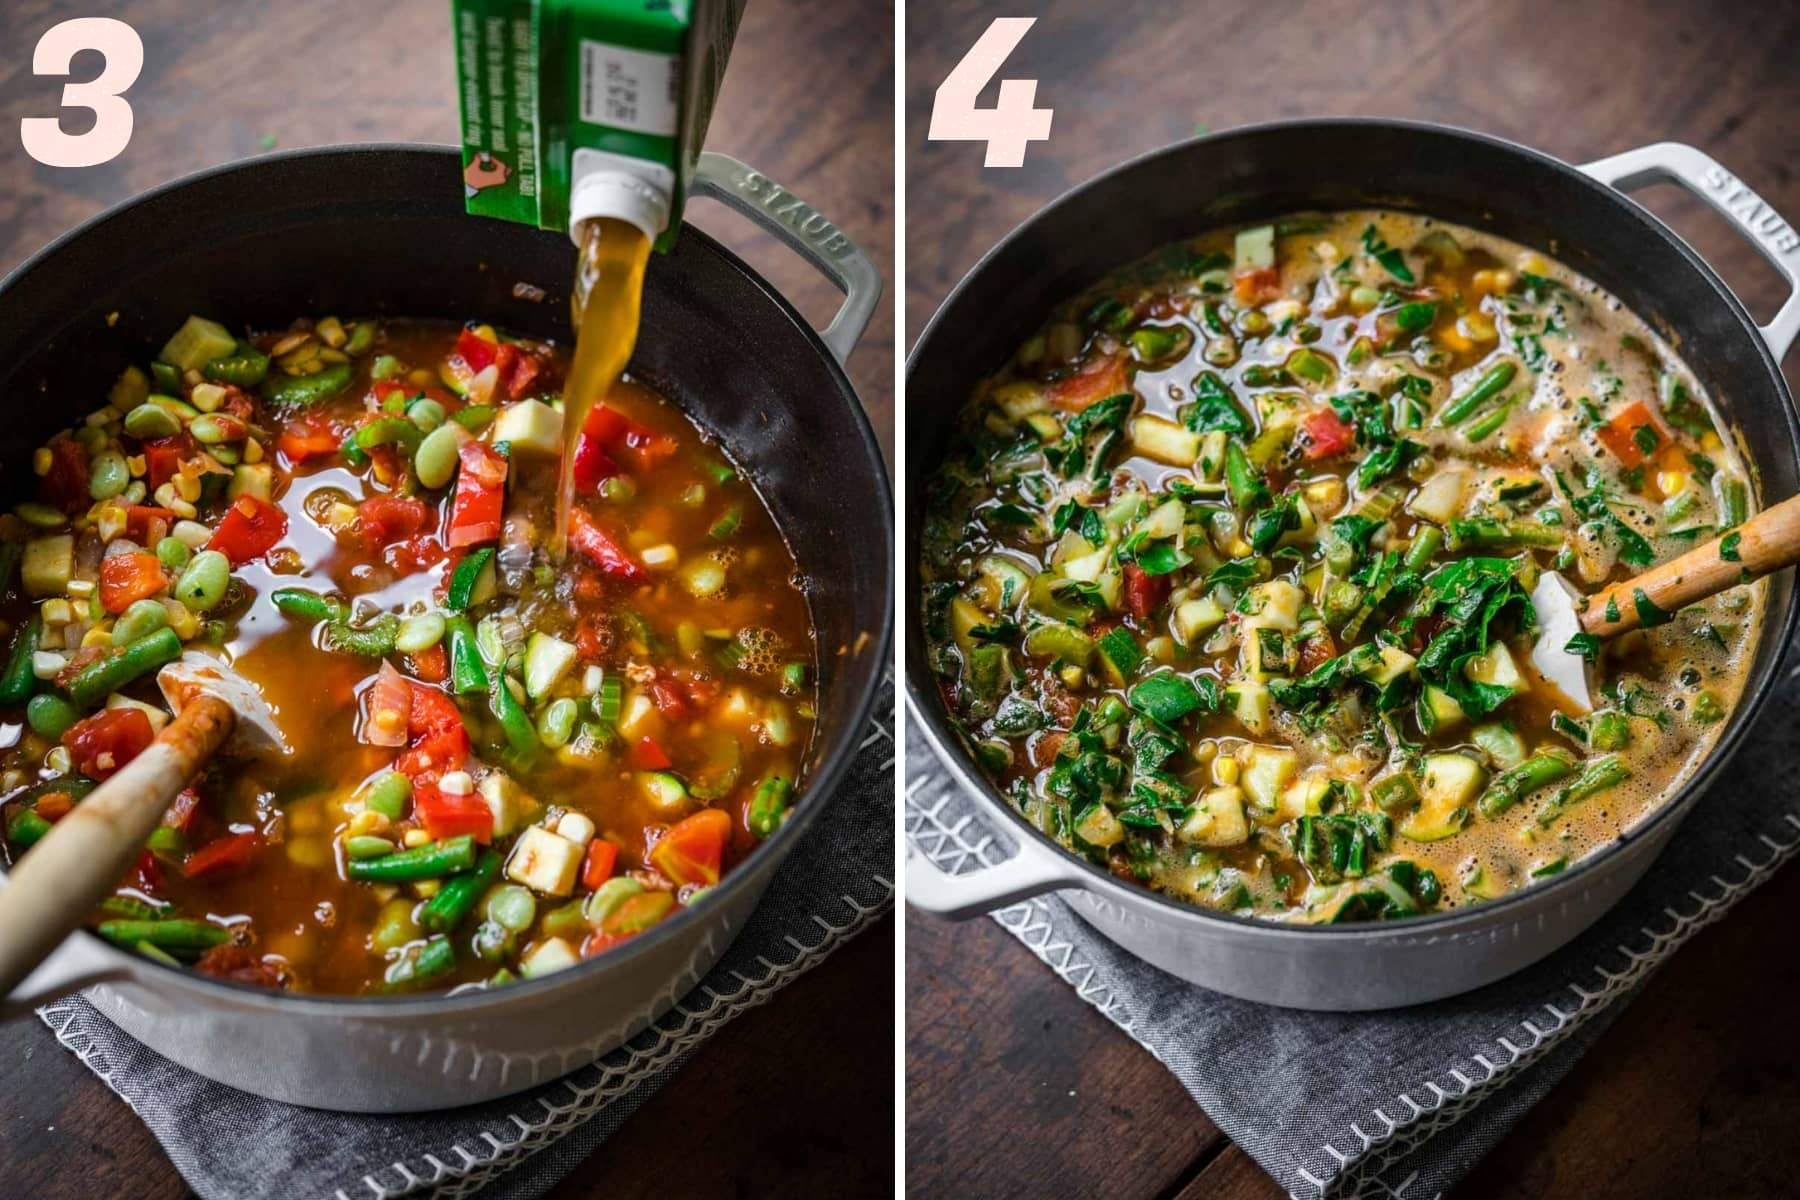 on the left: pouring vegetable broth into soup. on the right: summer vegetable minestrone in pot.